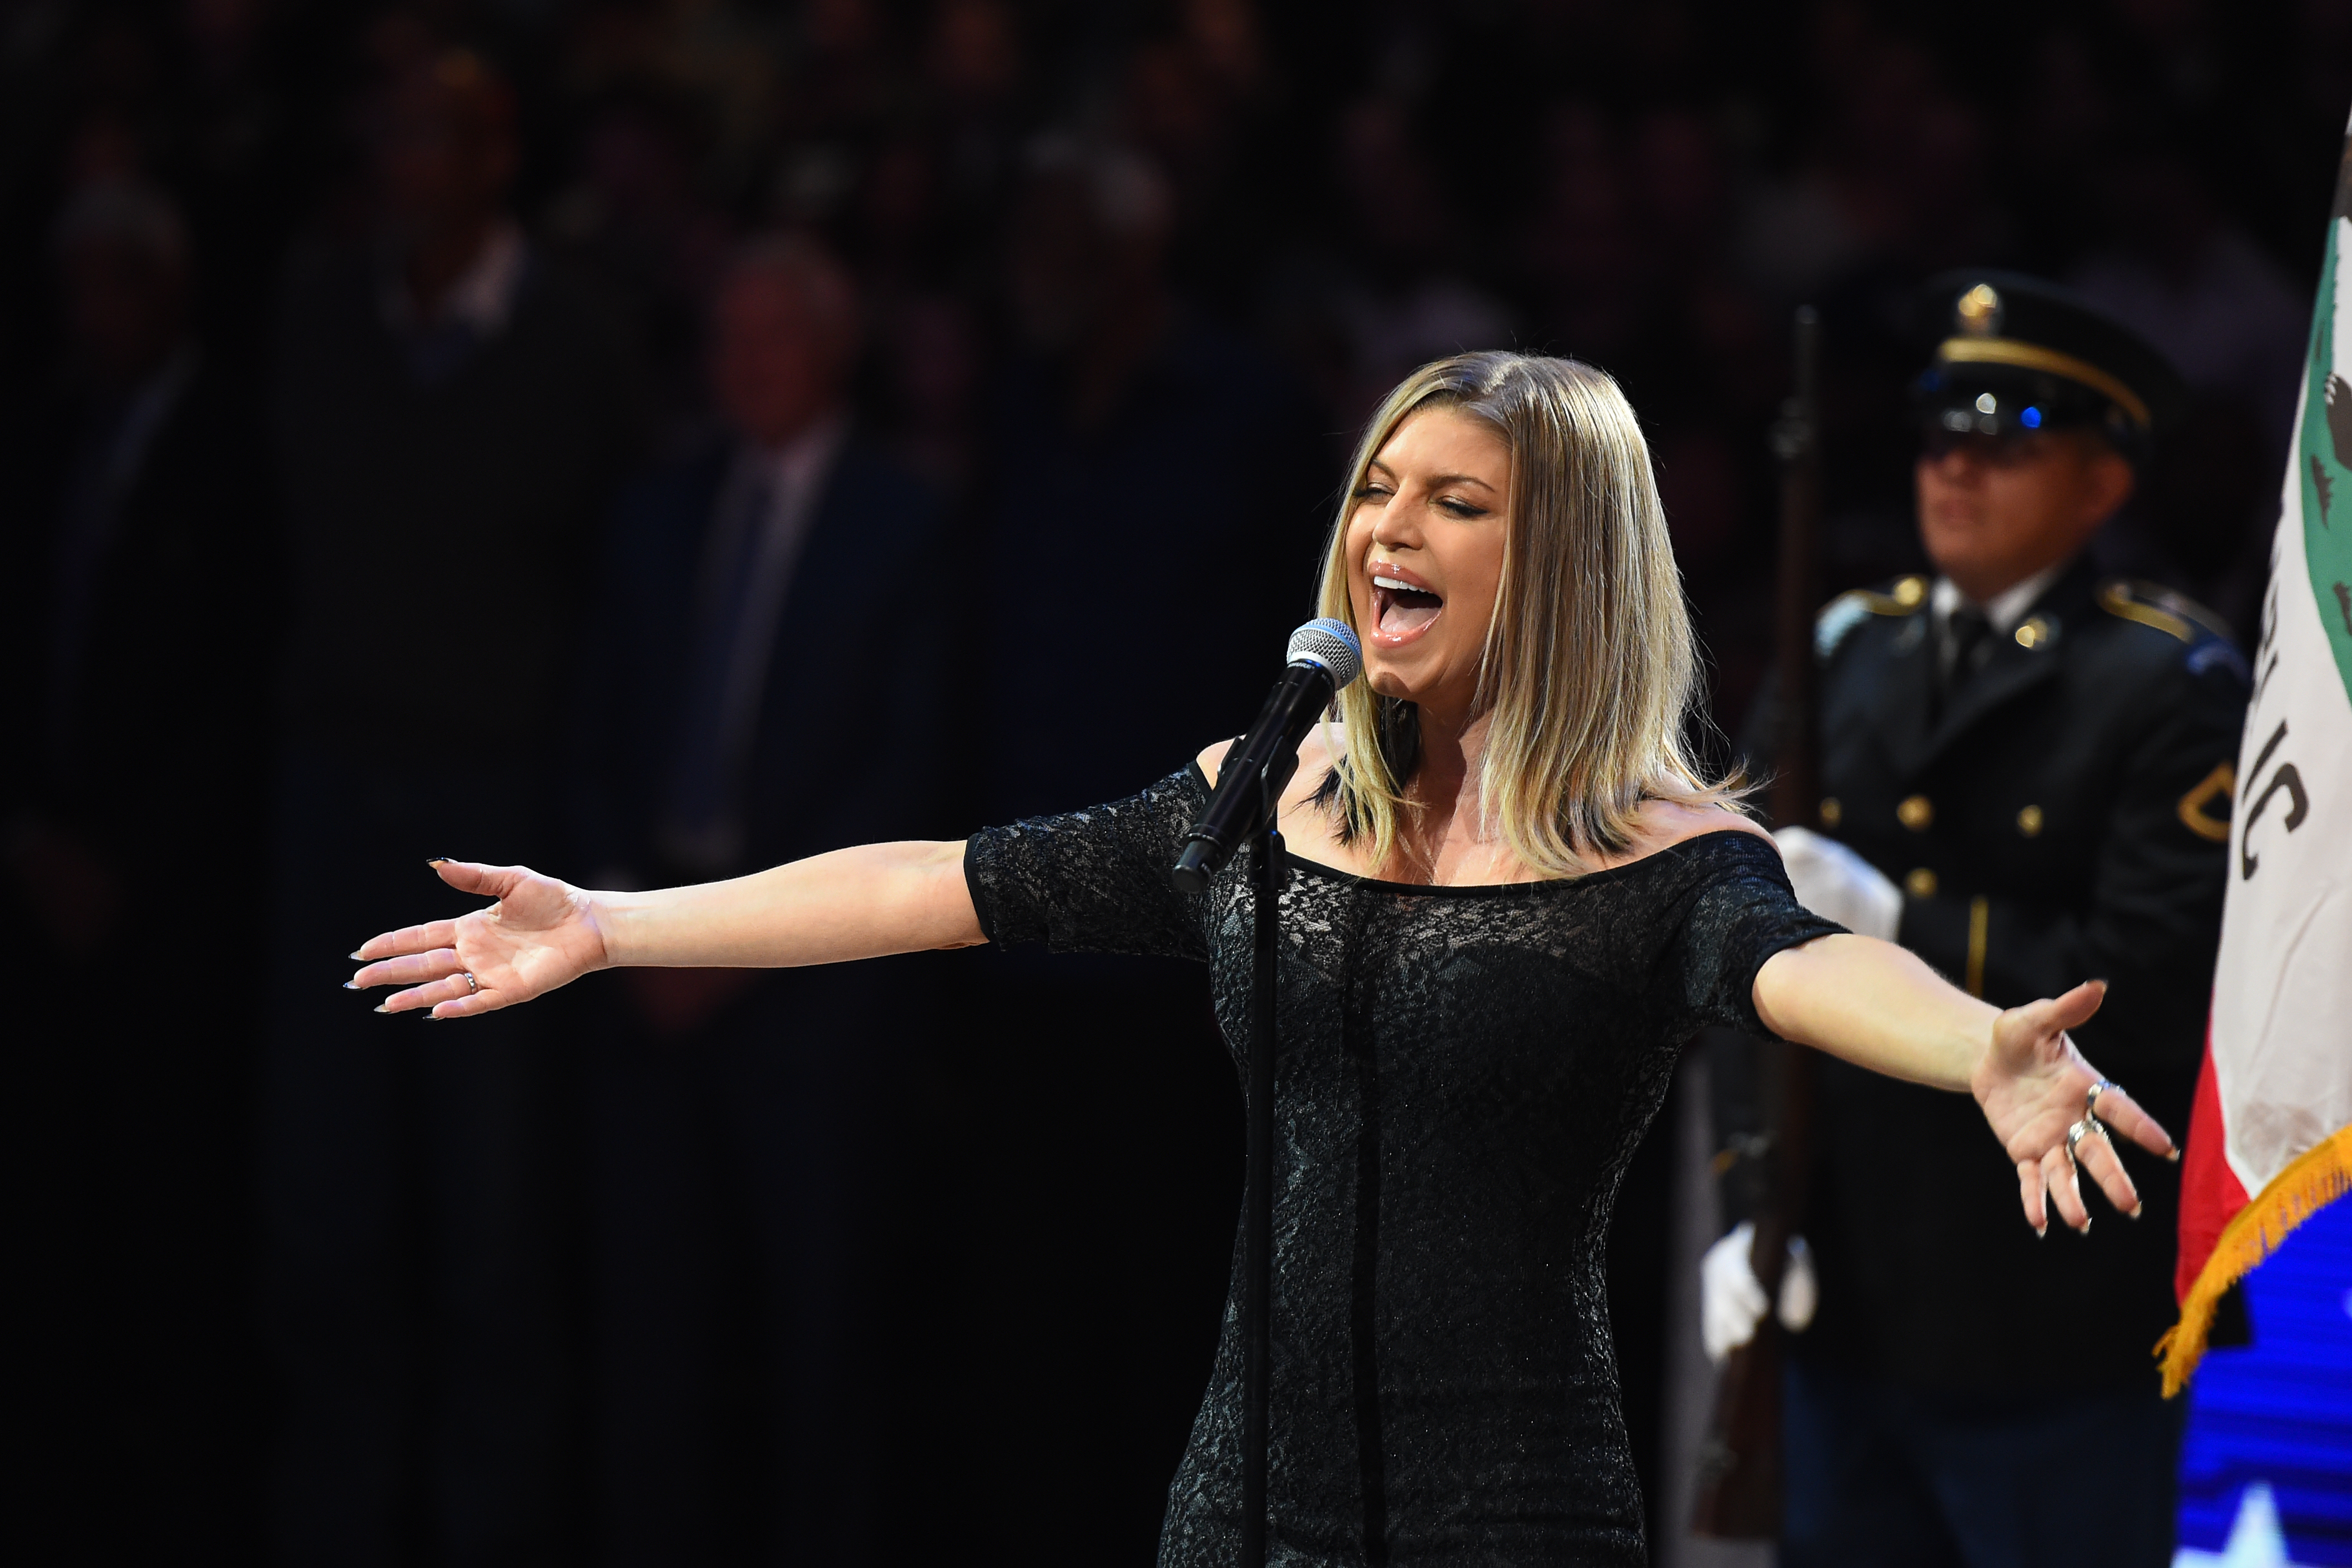 Fergie-Speaks-Out-Following-Her-NBA-All-Star-Game-Performance-I-Honestly-Tried-My-Best